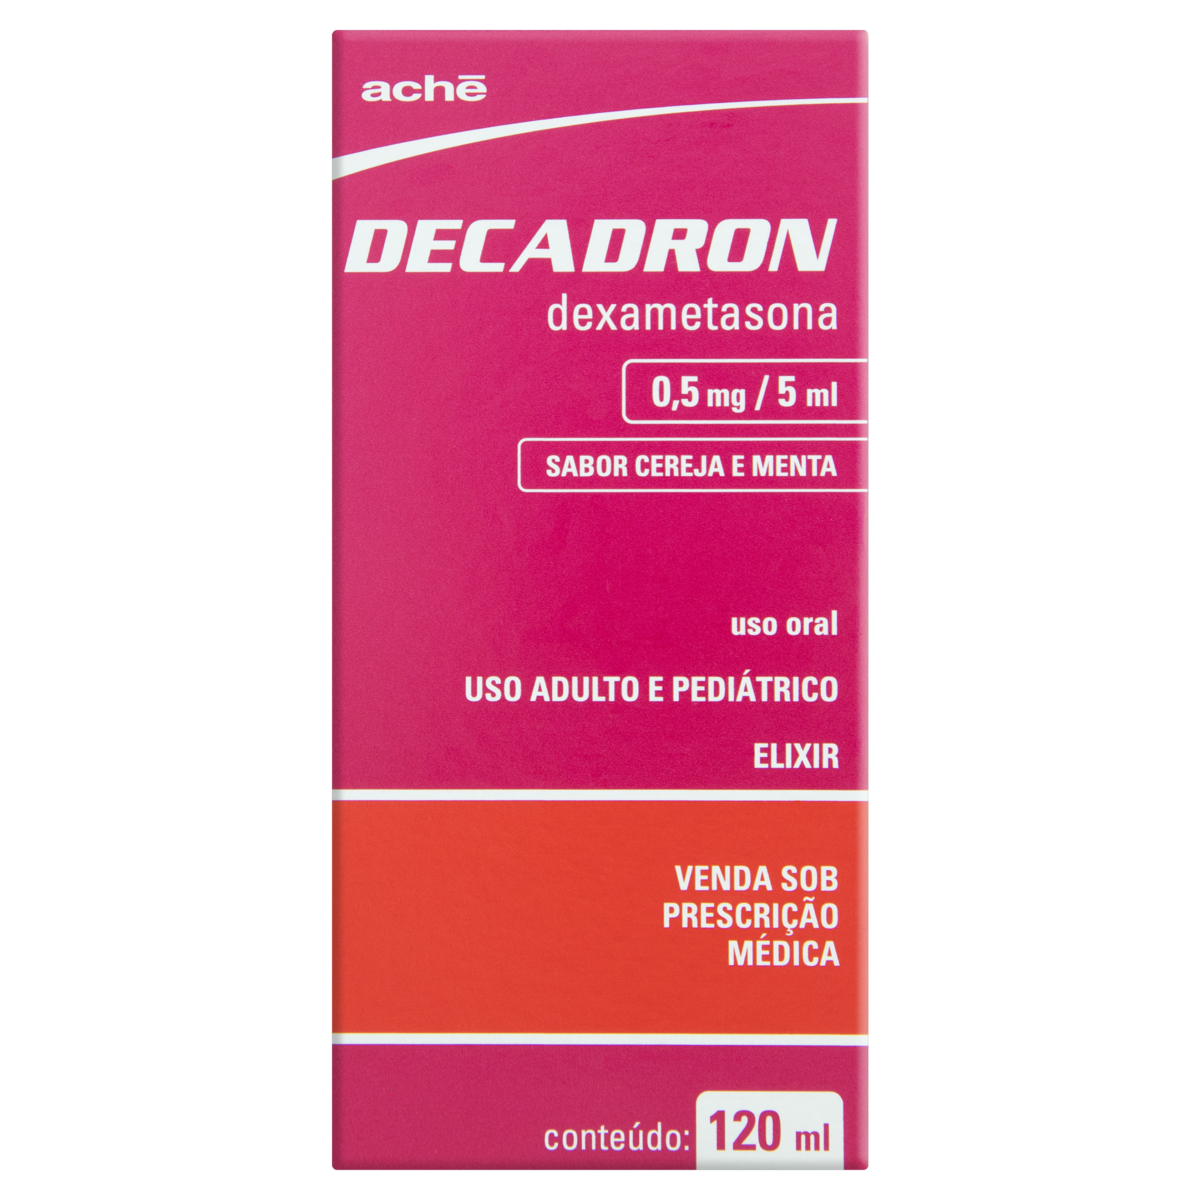 7896658003554 - DECADRON 0,5MG/5ML CEREJA E MENTA ACHÉ CAIXA 120ML